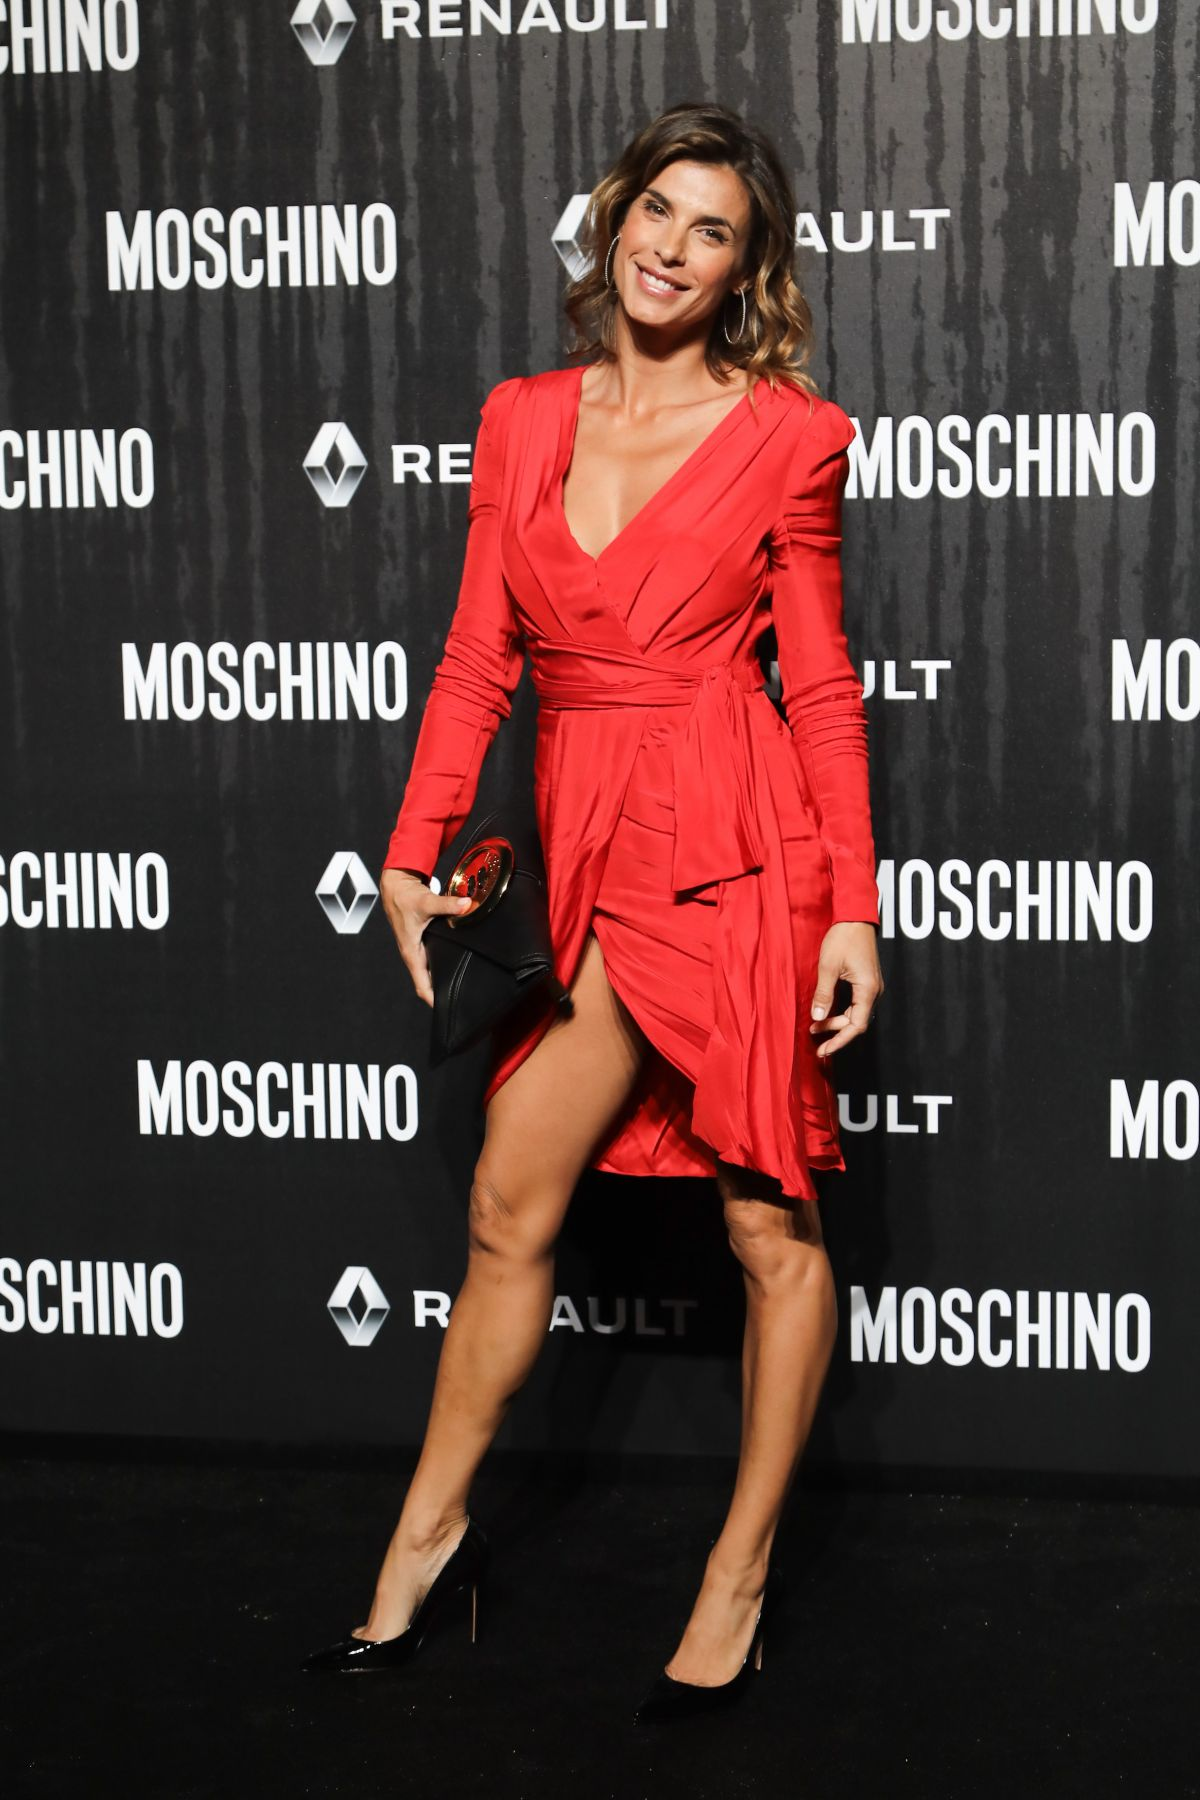 Elisabetta Canalis attends Moschino Fashion Show in Rome, Italy